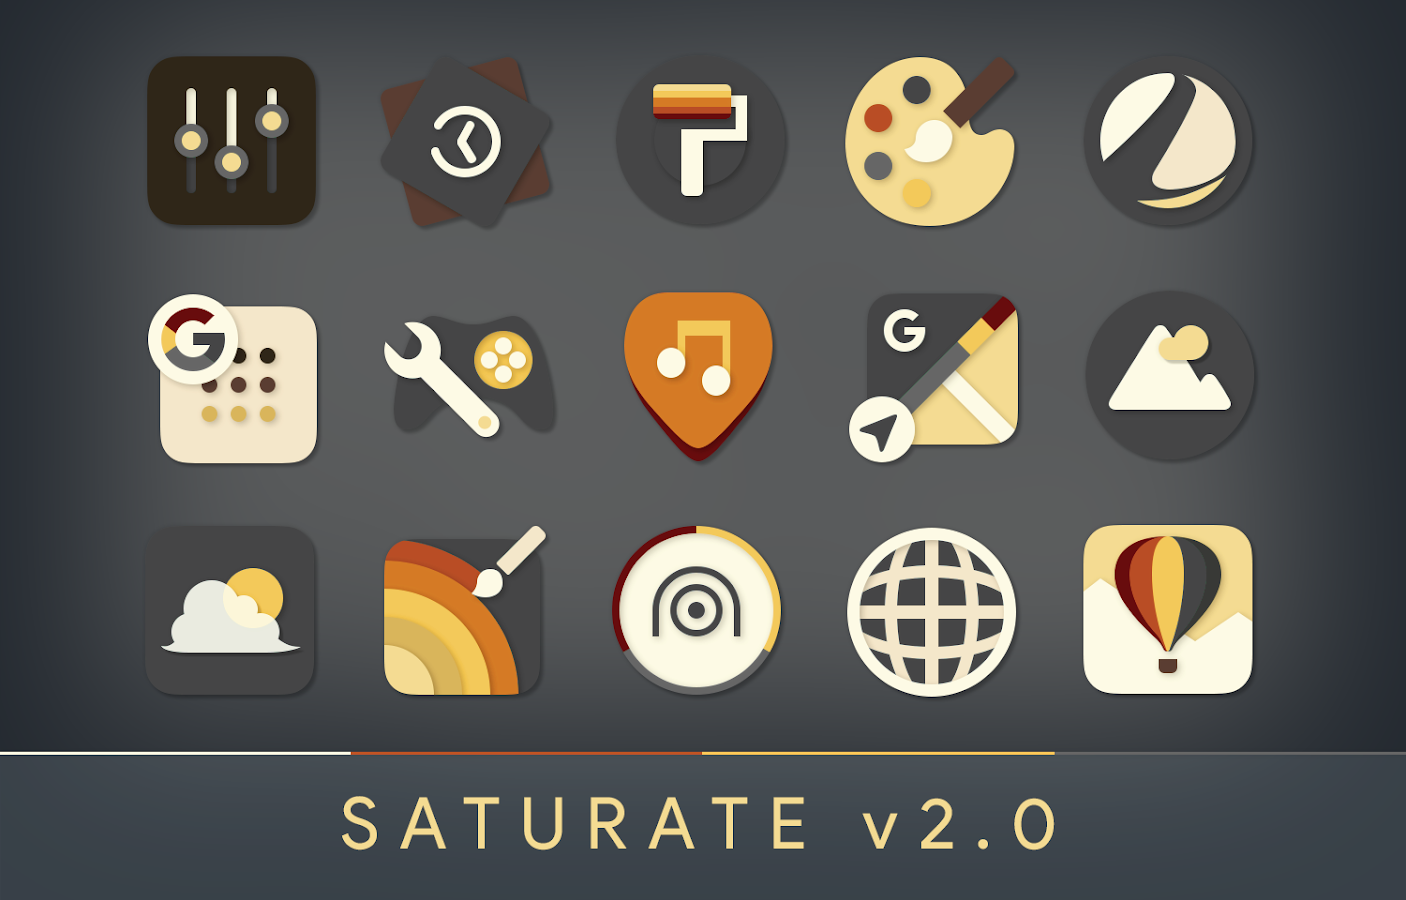 Saturate - Free Icon Pack Screenshot 0